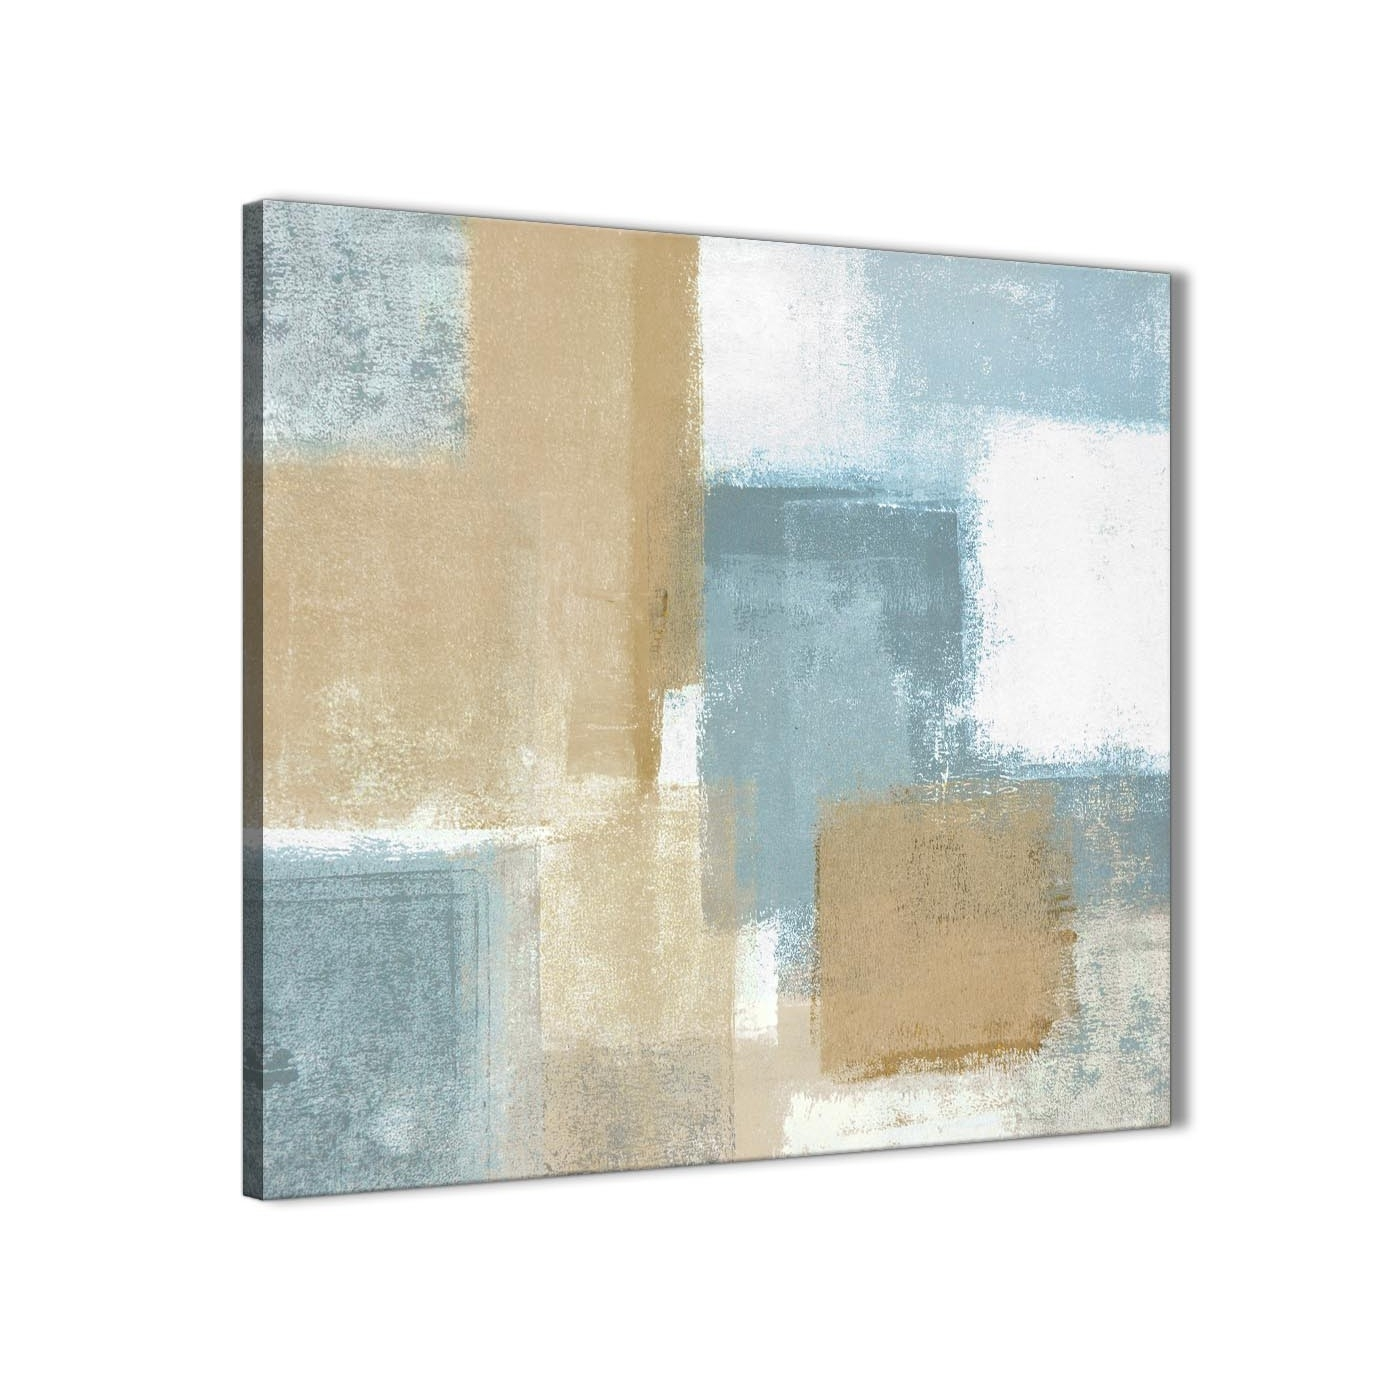 Blue Beige Brown Abstract Painting Canvas Wall Art Print – Modern In Most Recently Released Blue And Brown Abstract Wall Art (View 6 of 20)